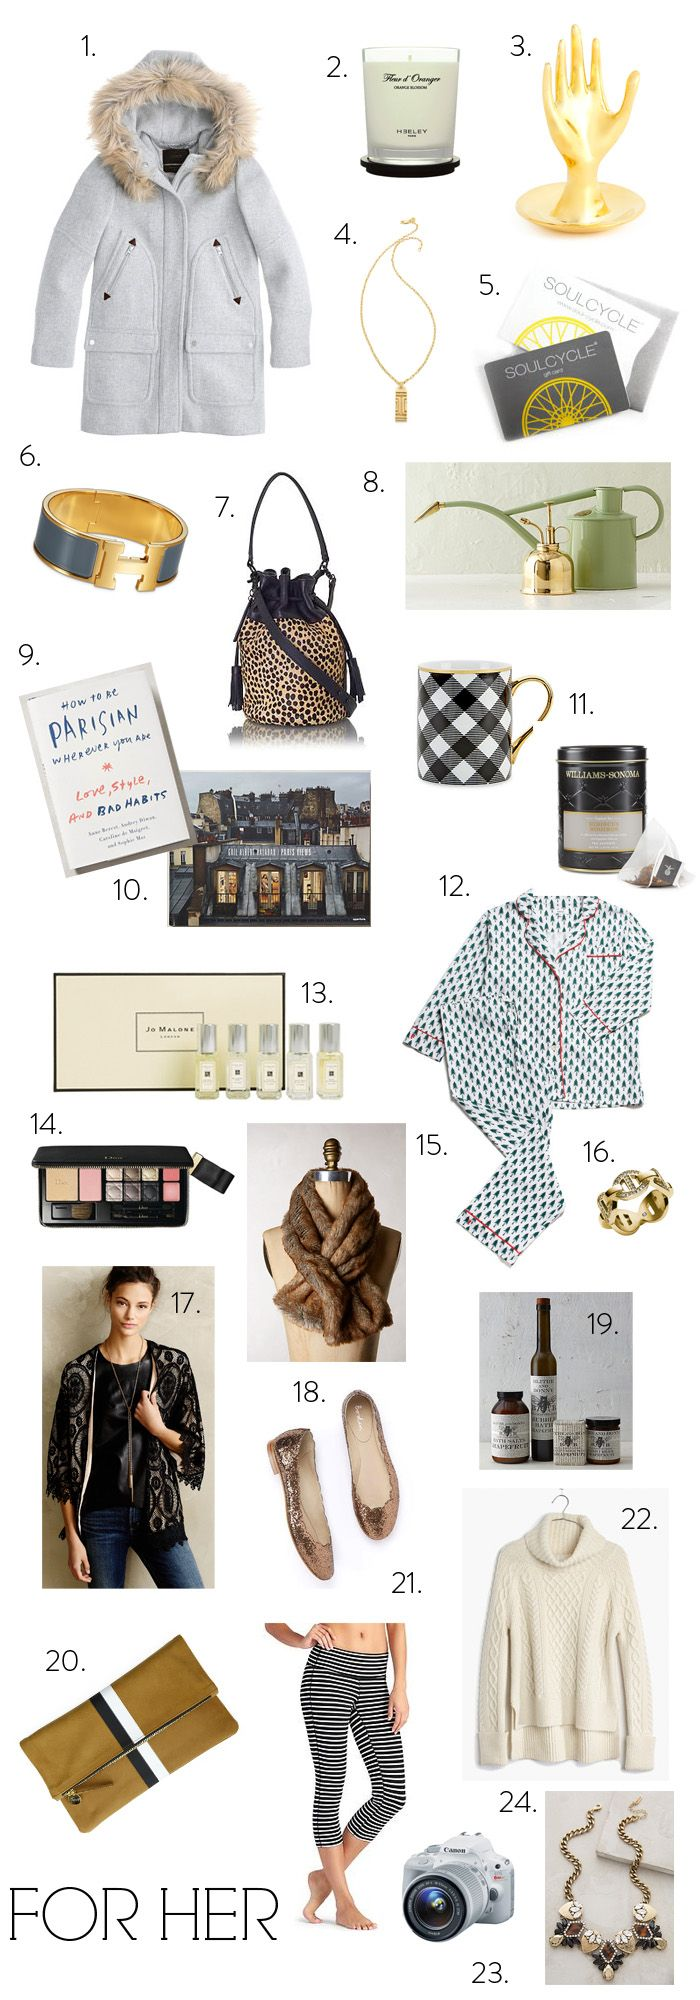 73 best Gifts (for me too) images on Pinterest | Christmas presents ...